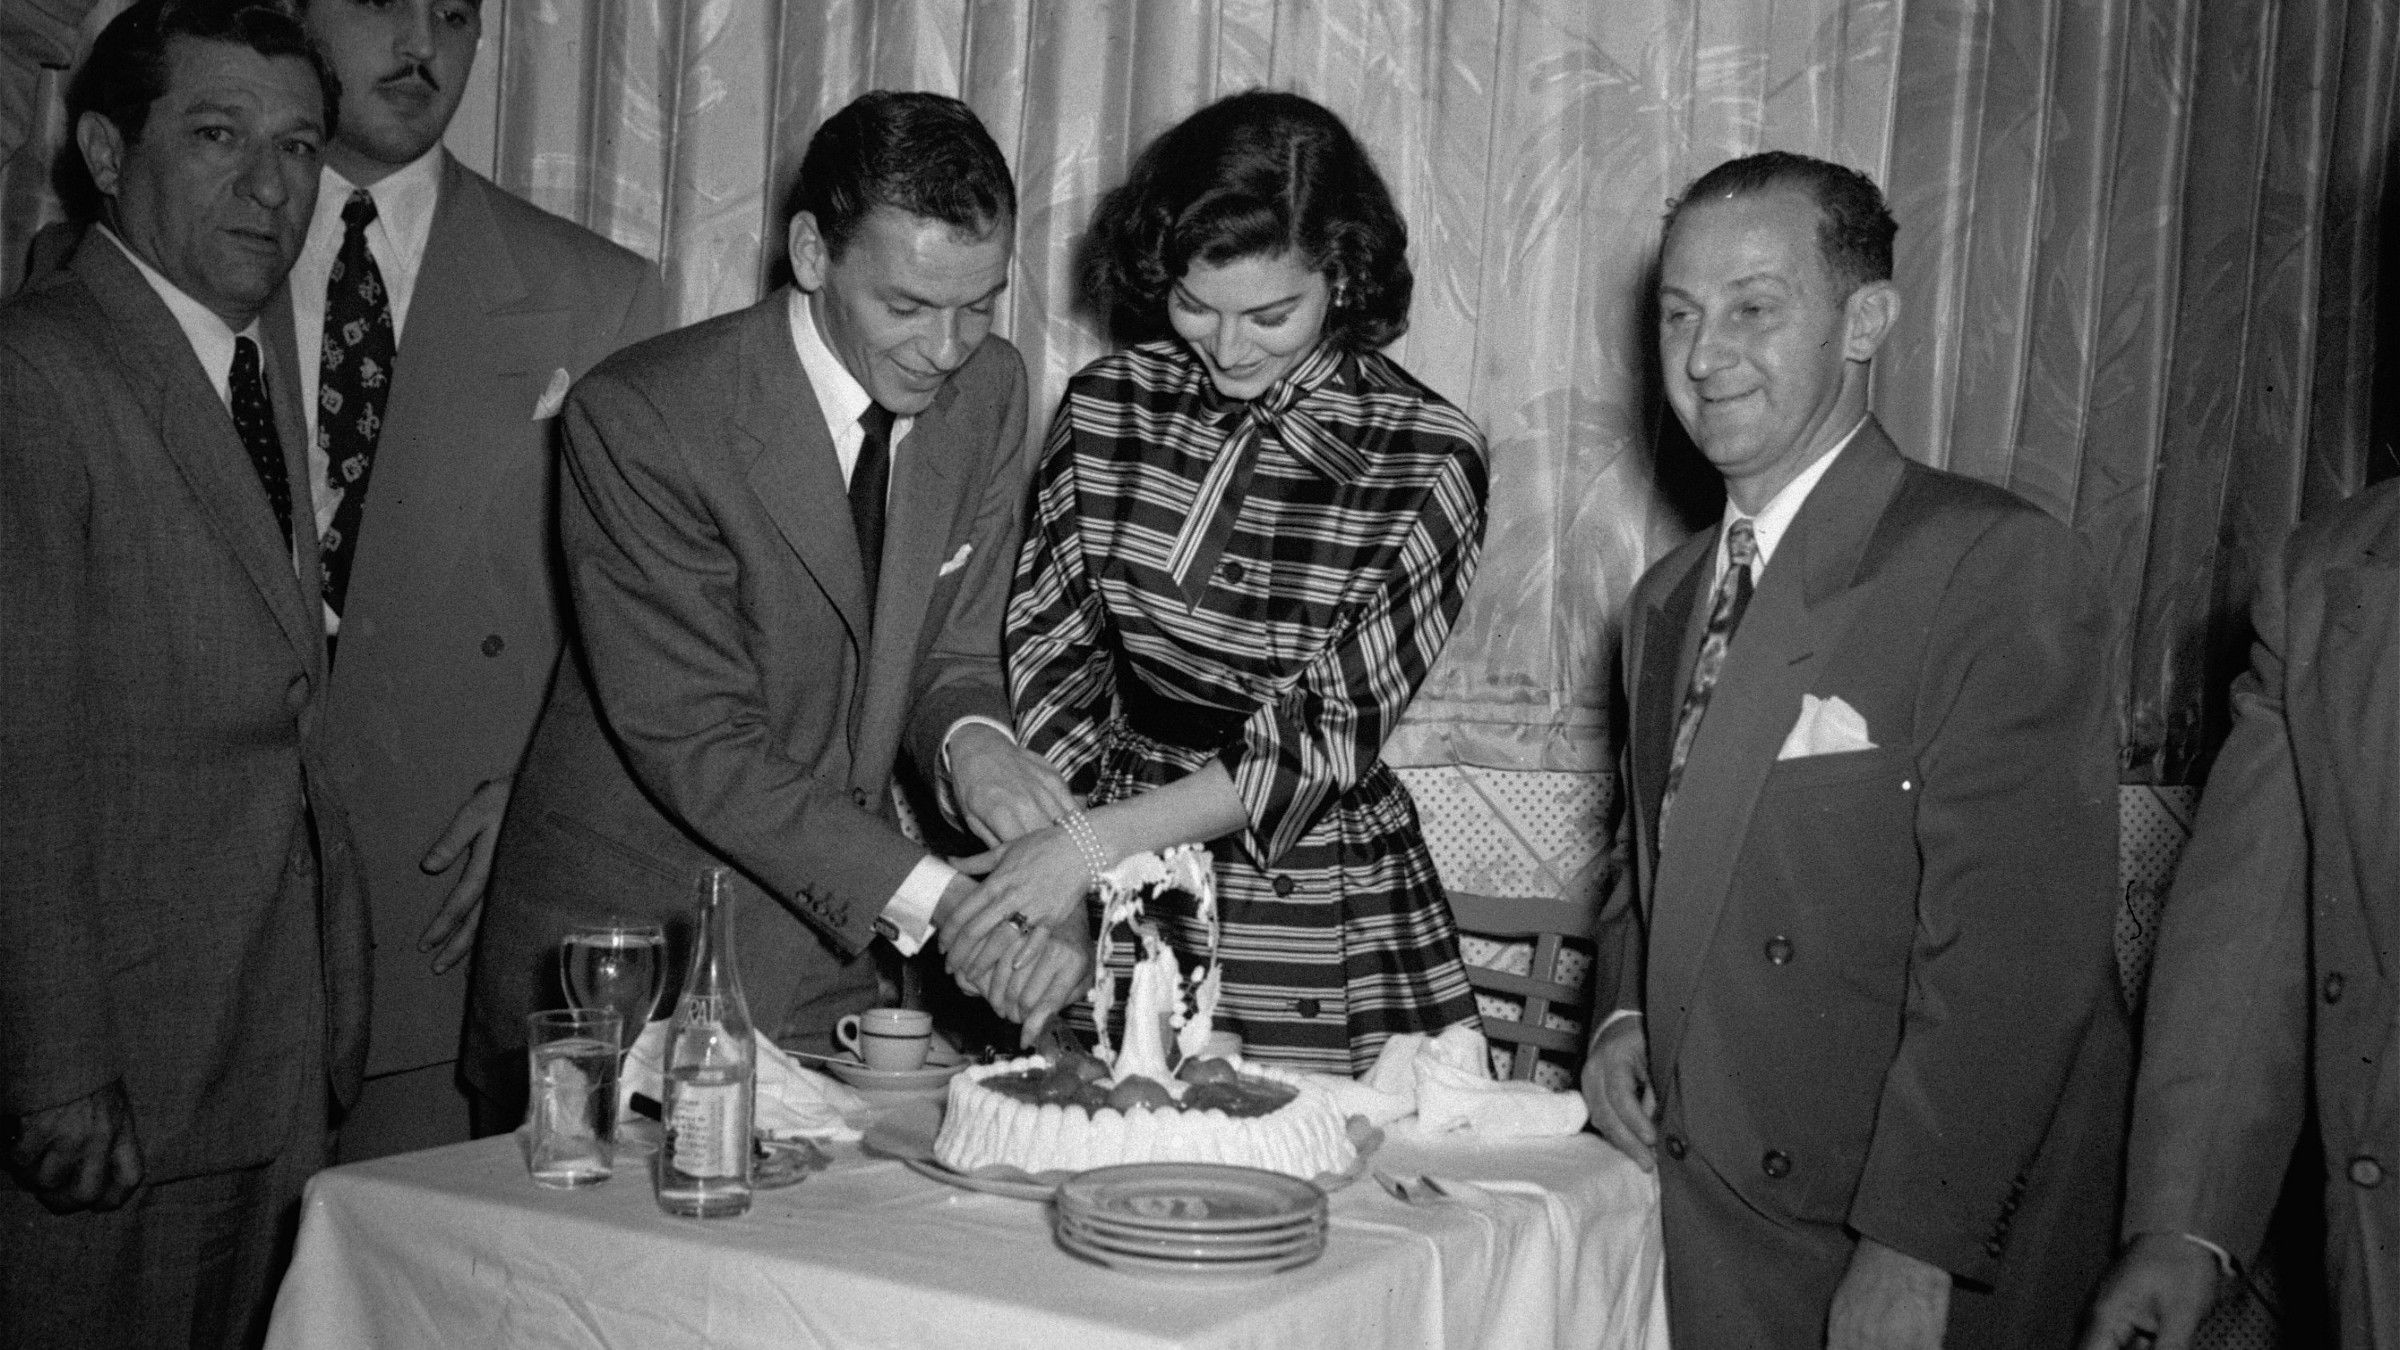 Frank Sinatra and his new bride, movie actress Ava Gardner, join hands as they cut a wedding cake in the Montmarte, a Havana, Cuba, nightclub November 8, 1951. Married November 7, in Philadelphia, they went to Havana on a whirlwind honeymoon.